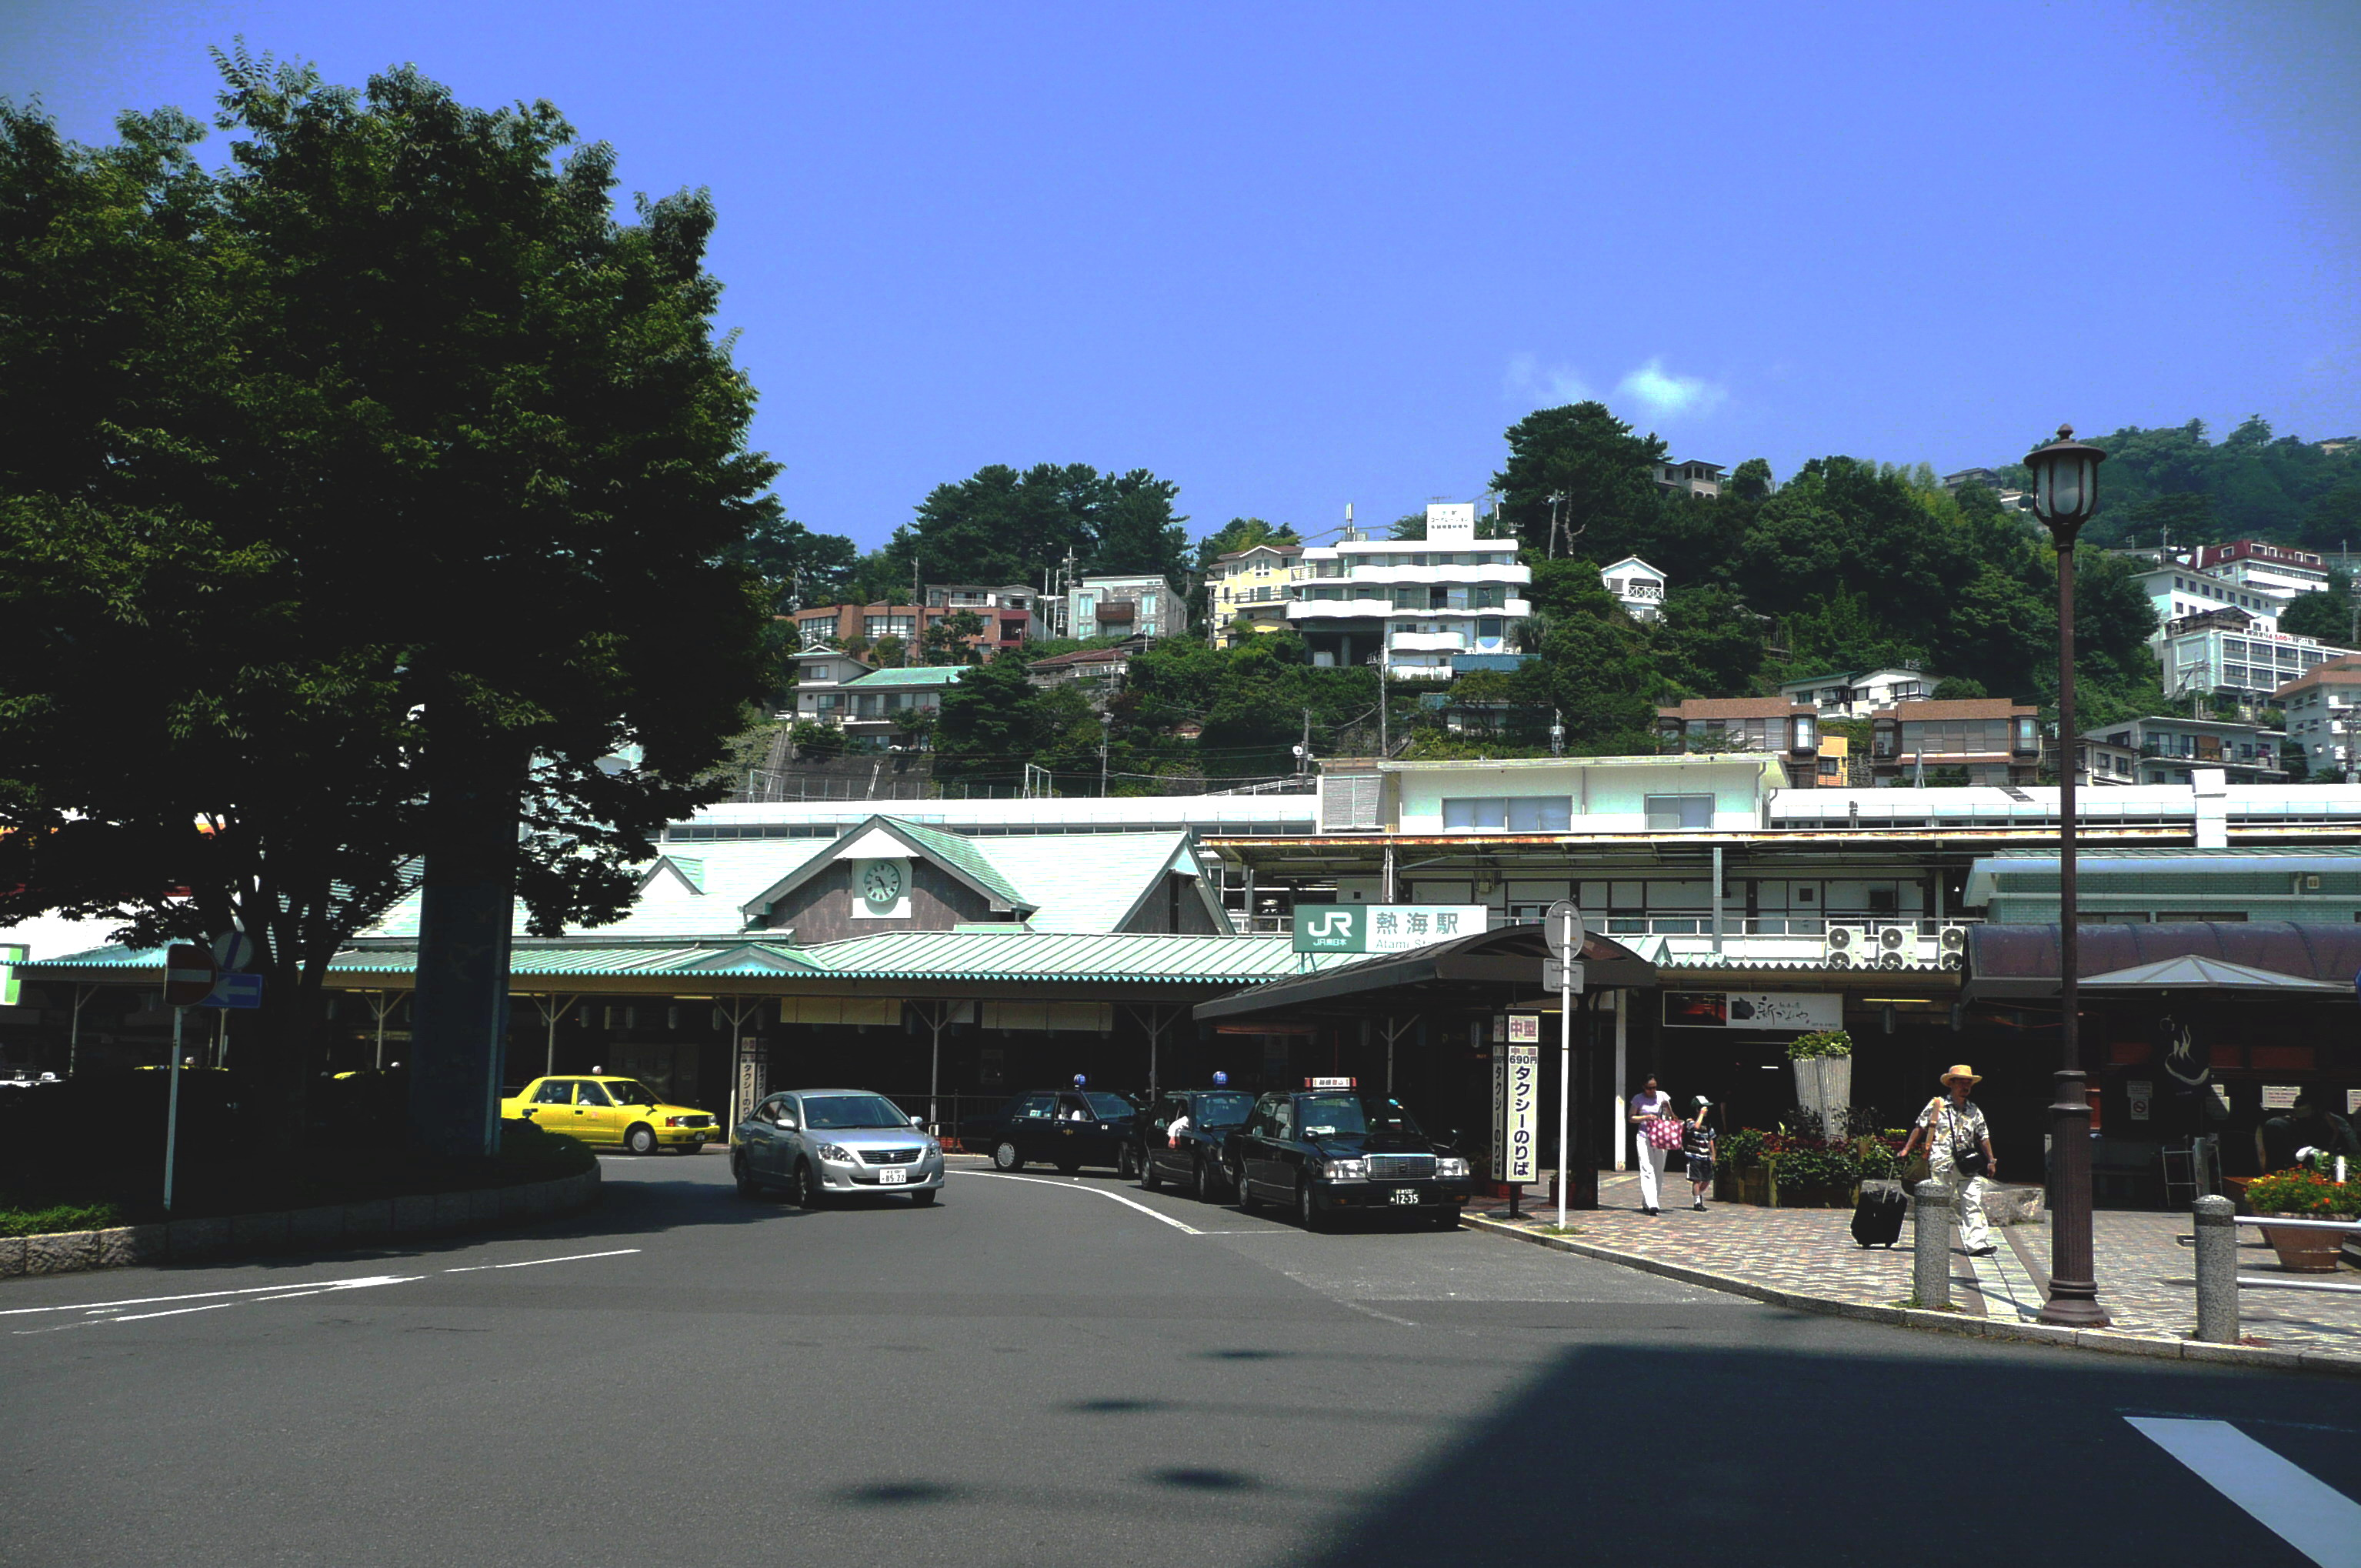 https://upload.wikimedia.org/wikipedia/commons/0/08/Atami_station.jpg